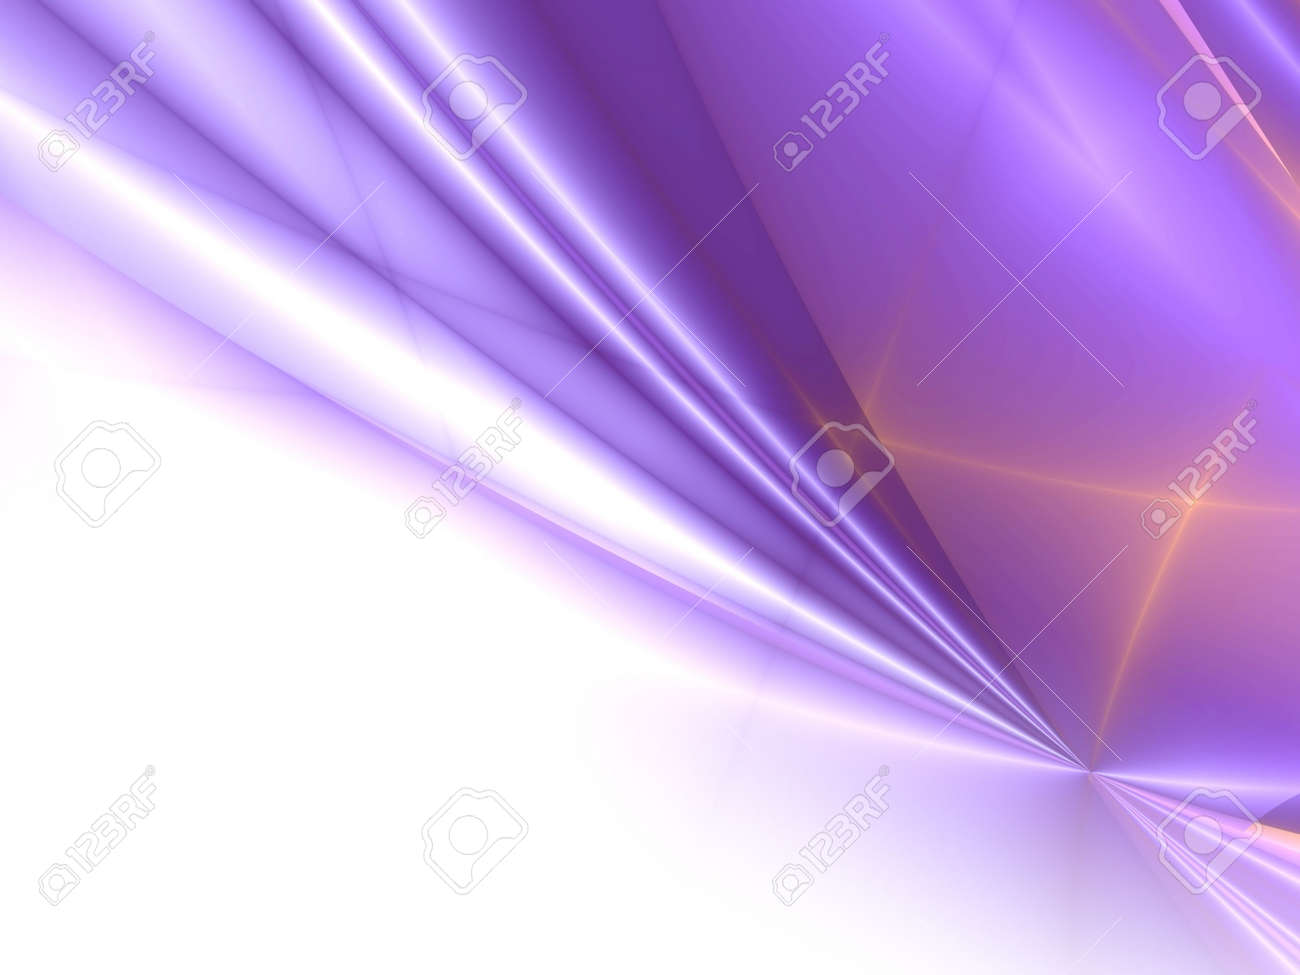 the gone into a detail represented fabric is in white and violet tones Stock Photo - 750391